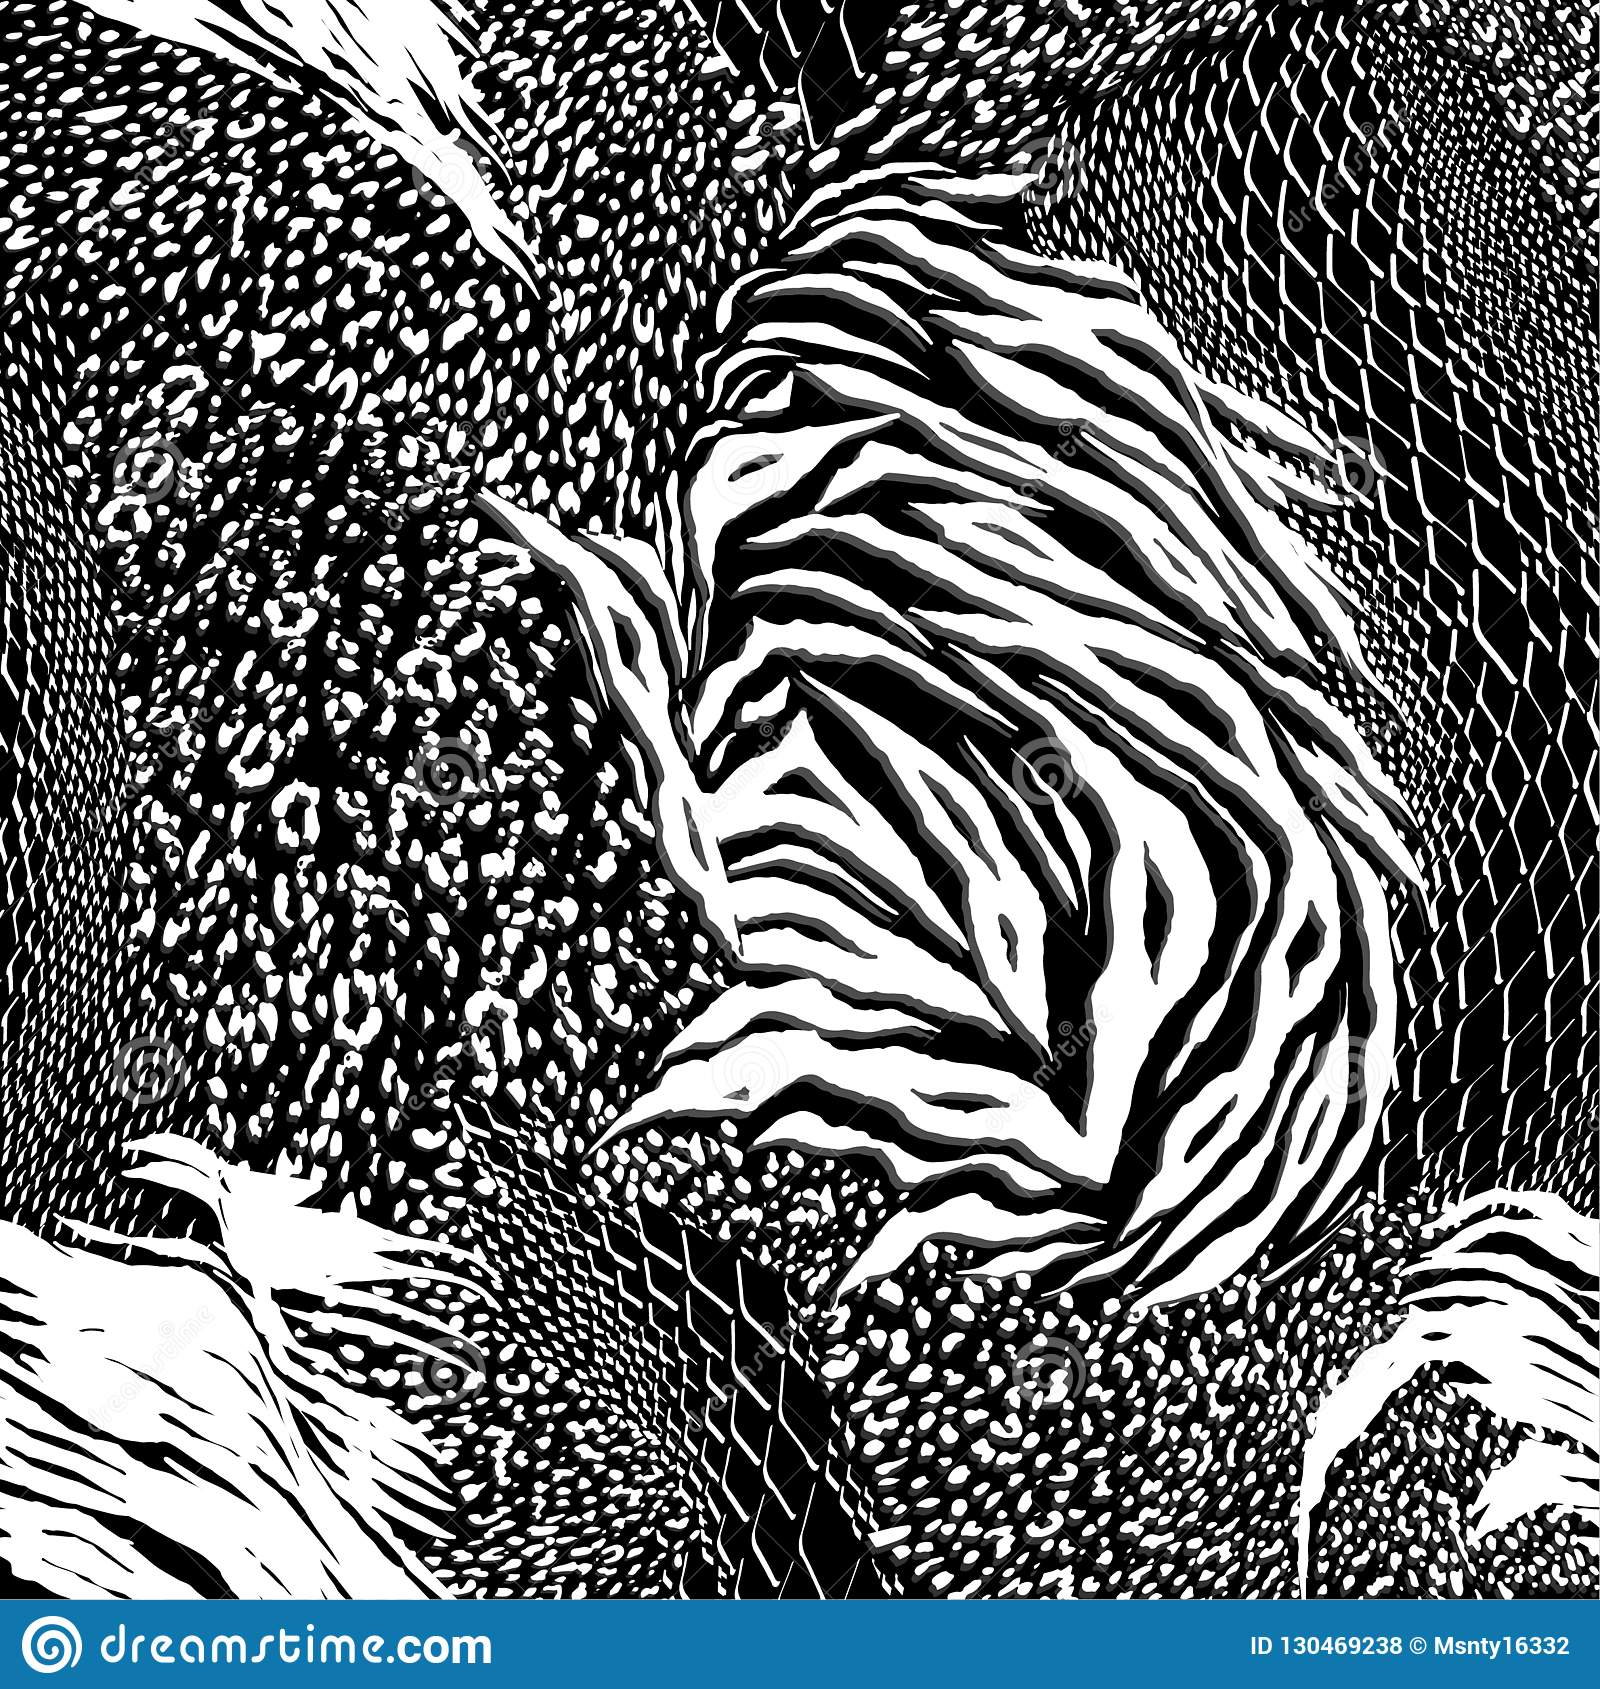 1cd8647b0482 Modern black and white Mixed animal skin,tiger,zebra,leopard,snake,  background. Seamless pattern design for fashion fabric ,wallpaper and all  prints on ...